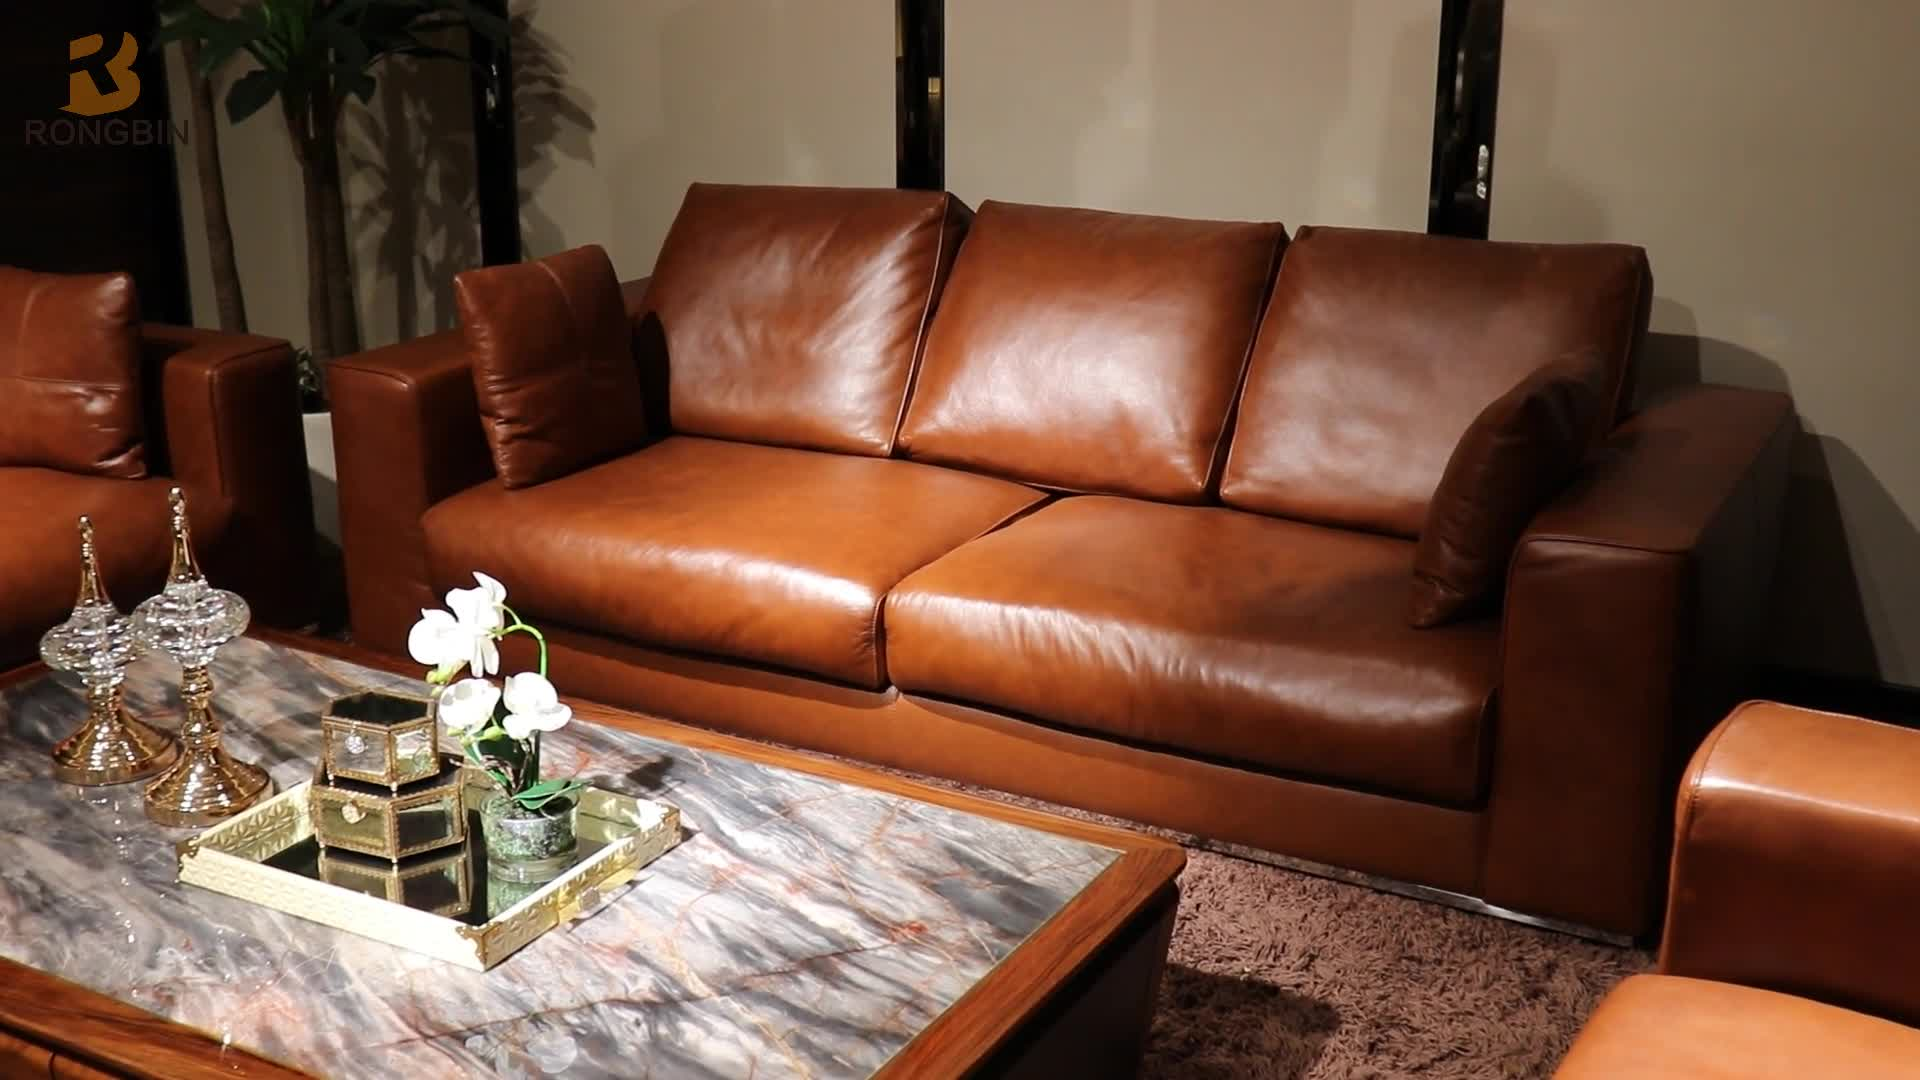 American Vintage Fancy Cheap Sofa Set Arab Style Antique Heated Leather 3  Seater Furniture Sofa Prices - Buy Furniture Sofa Prices,3 Seater ...